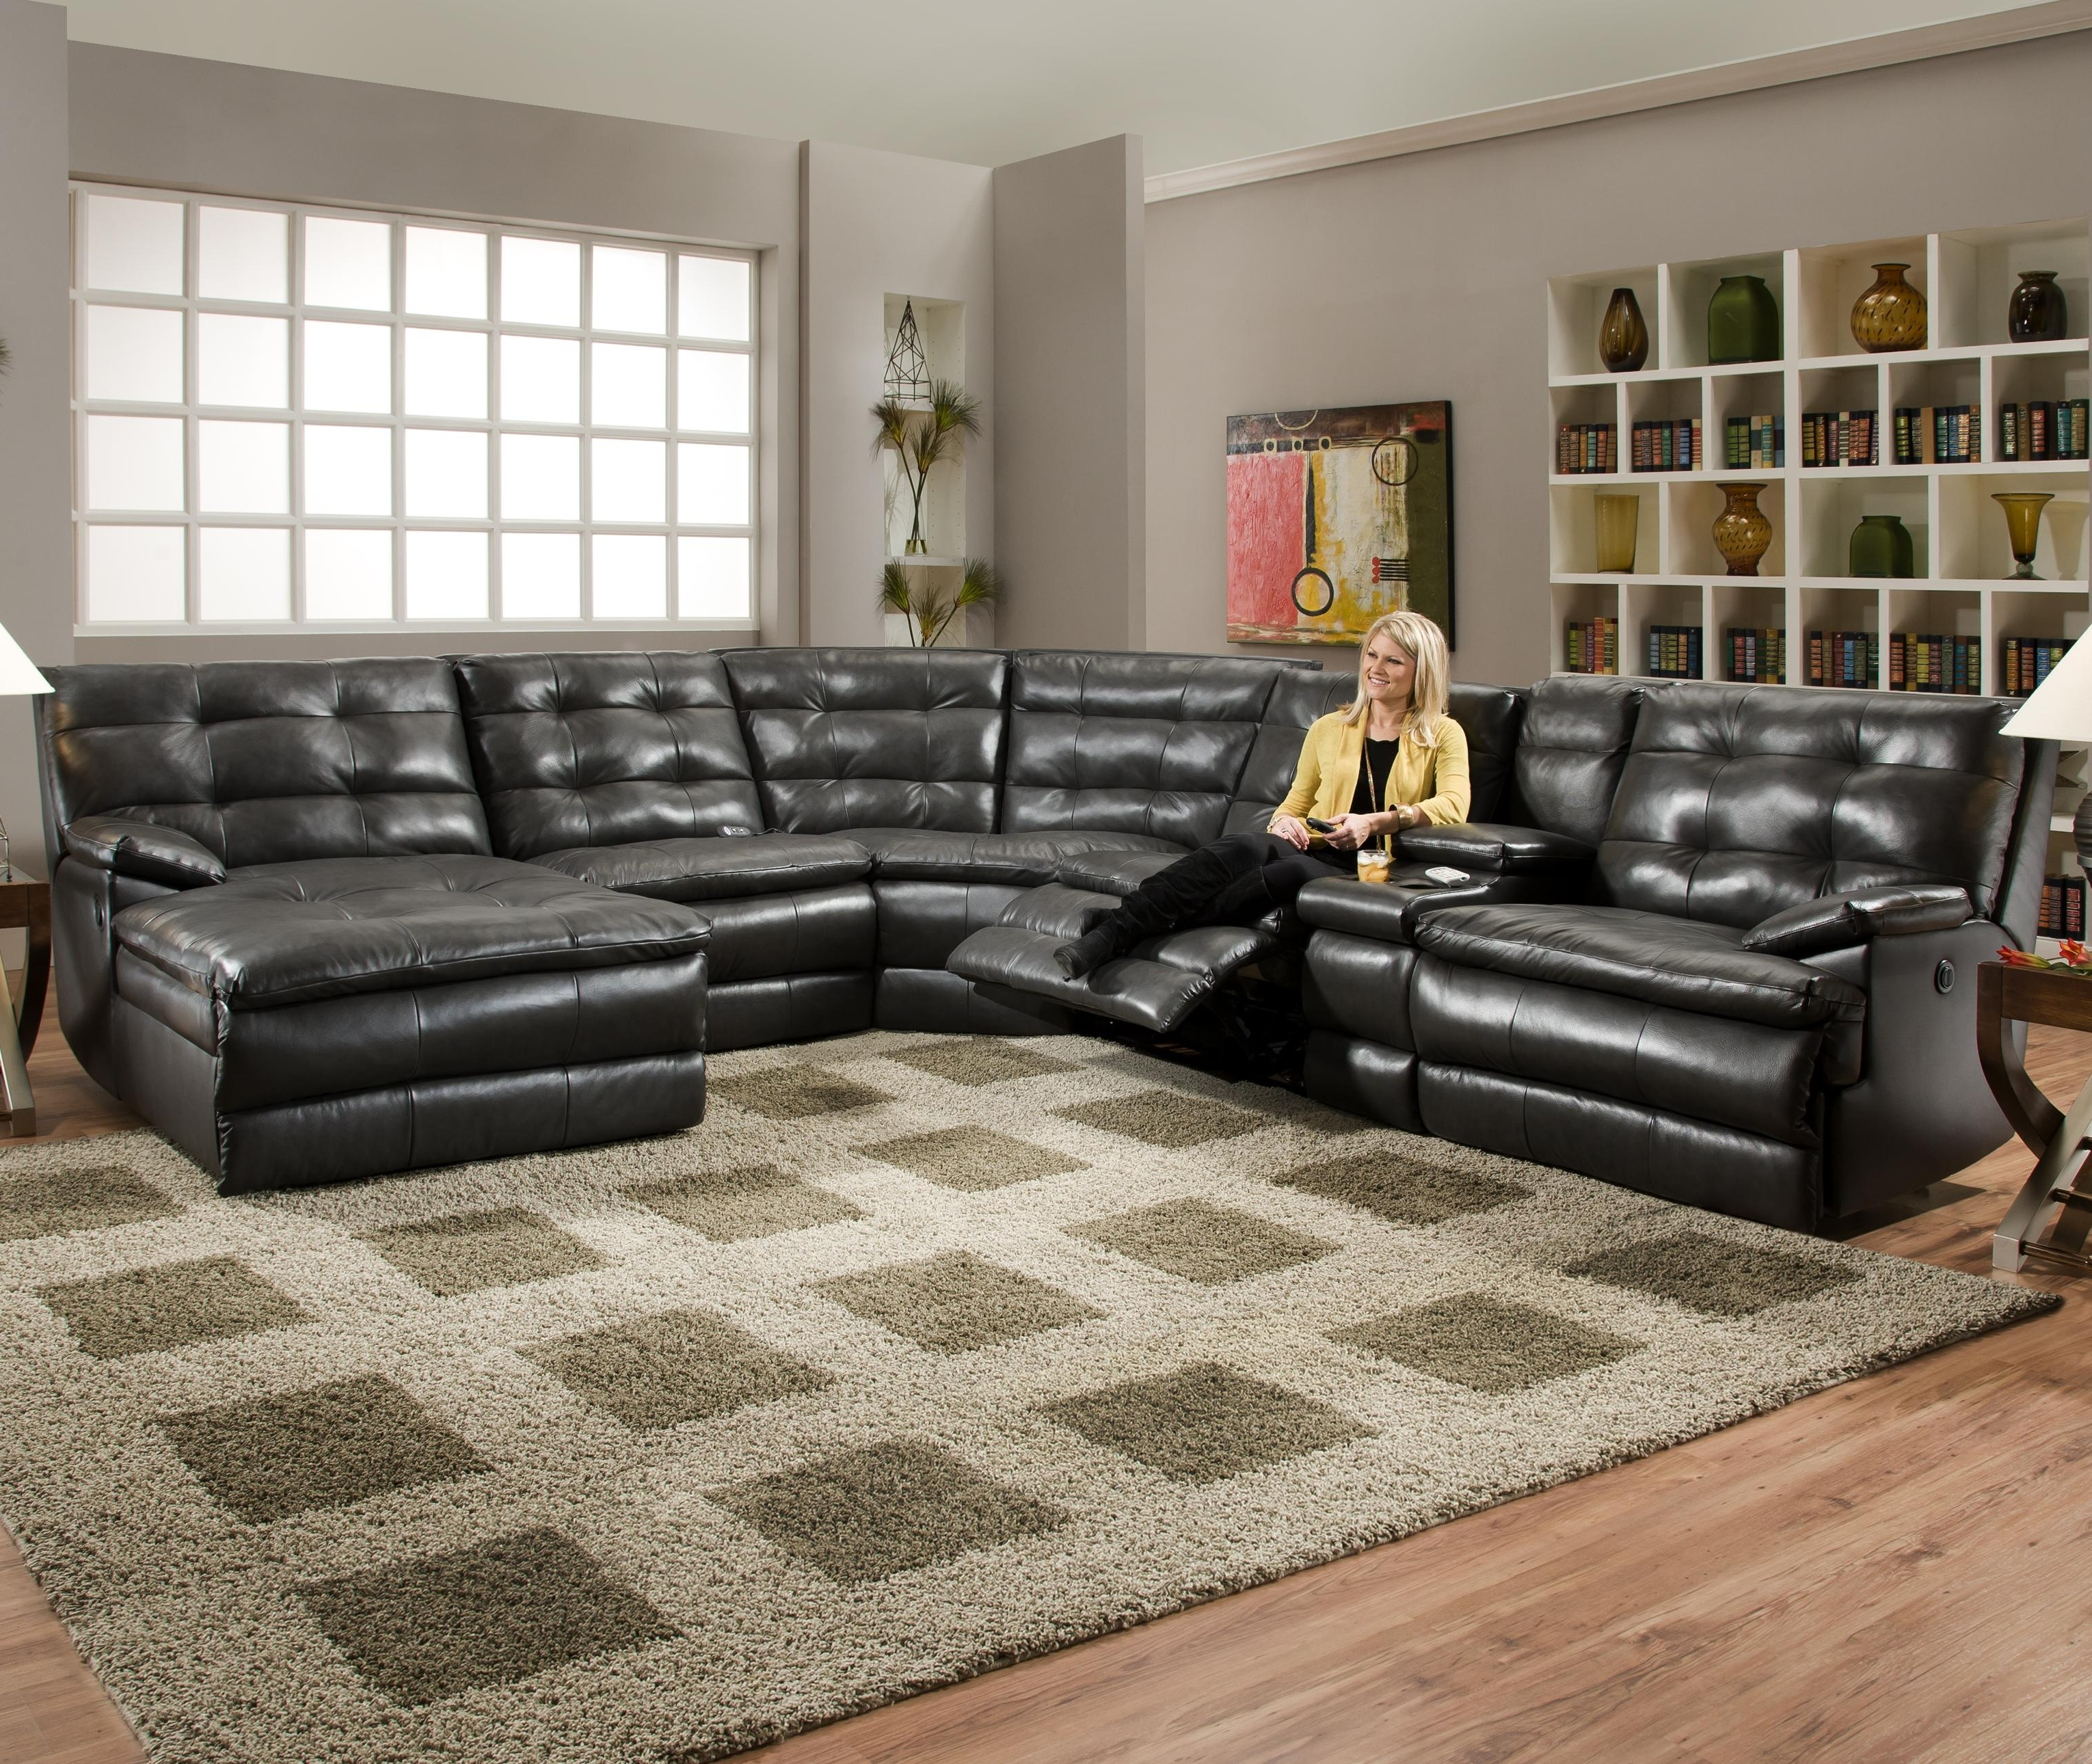 Sectional Sofas In Toronto With Most Current Big Sofas Sectionals – Hotelsbacau (View 13 of 20)